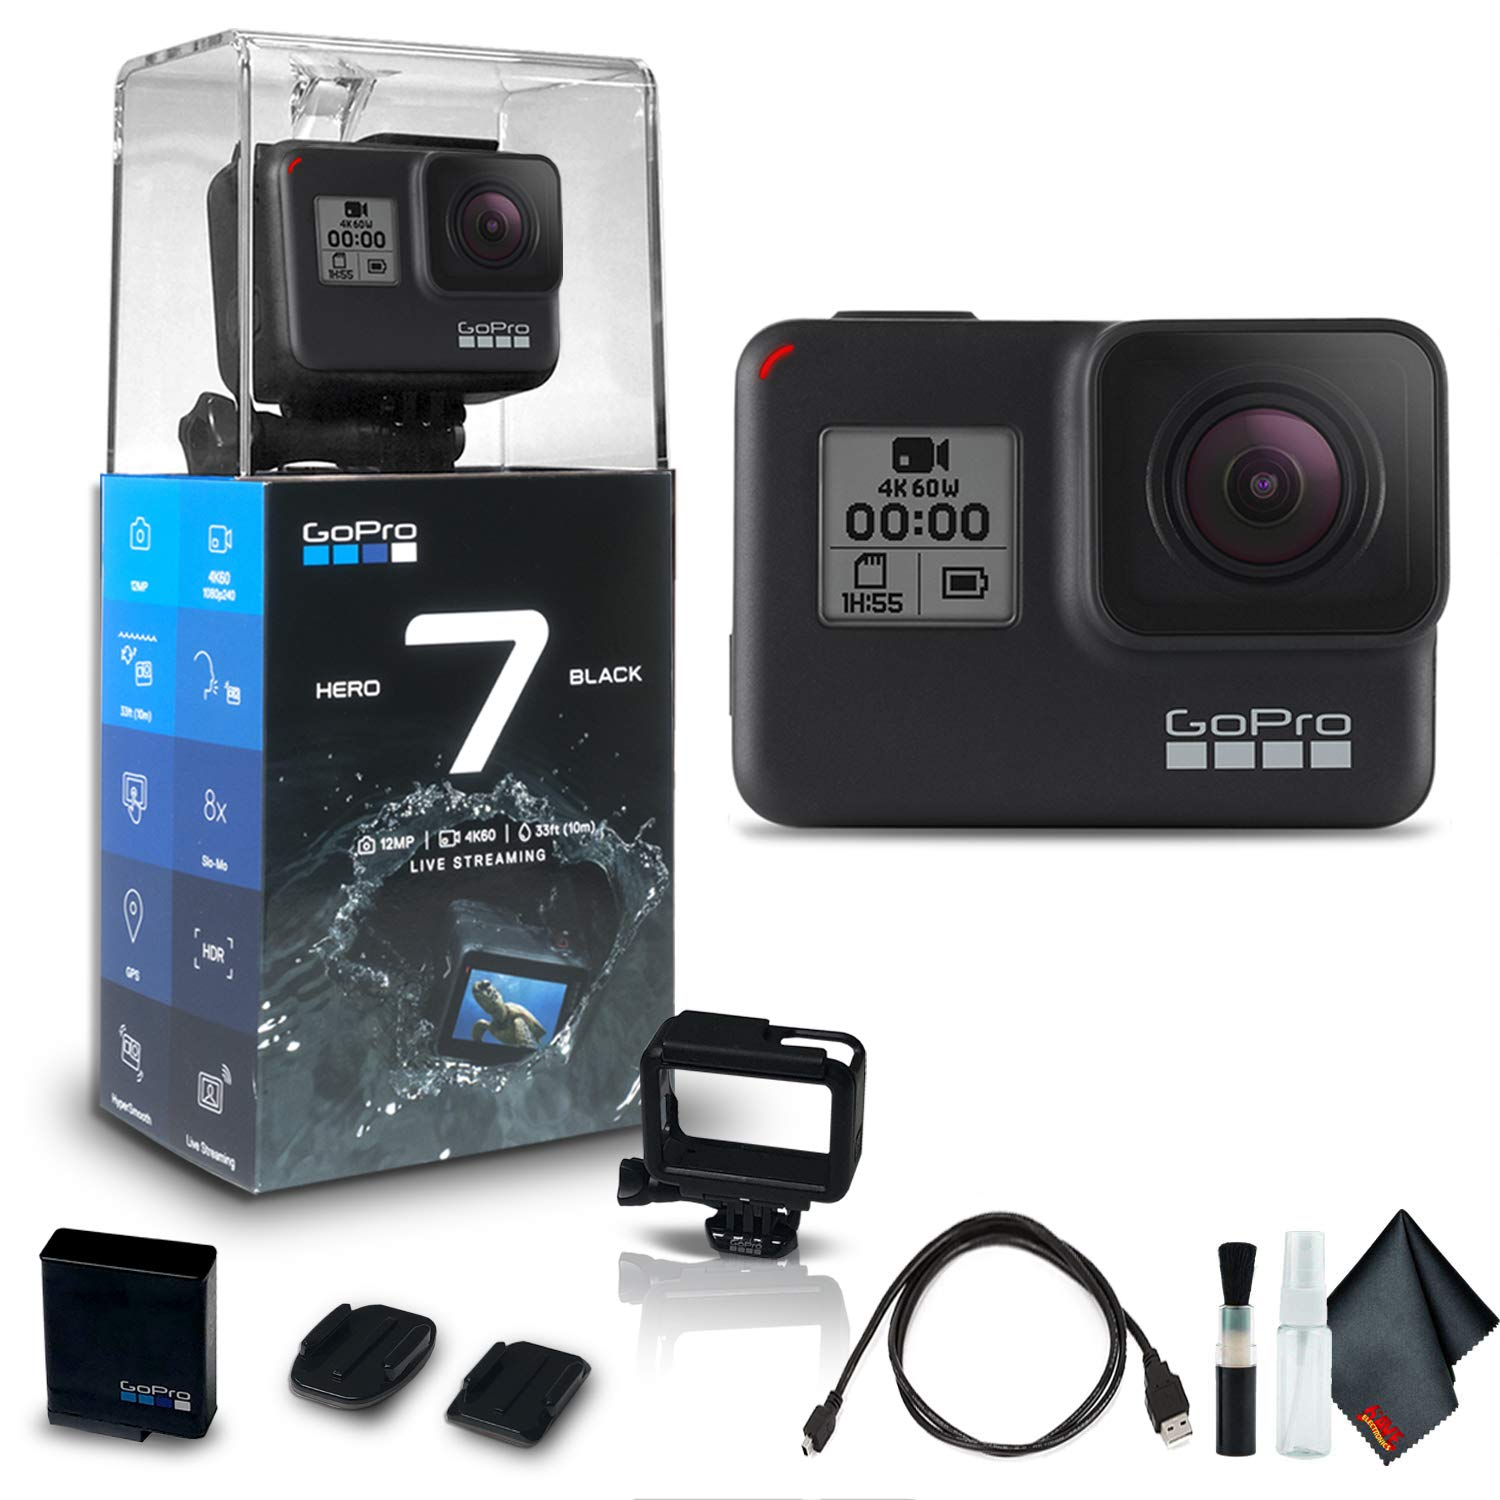 GoPro HERO7 Black - Waterproof Action Camera with Touch Screen (HERO7 Black), 4K HD Video, 12MP Photos, Live Streaming and Stabilization - Base Kit by GoPro